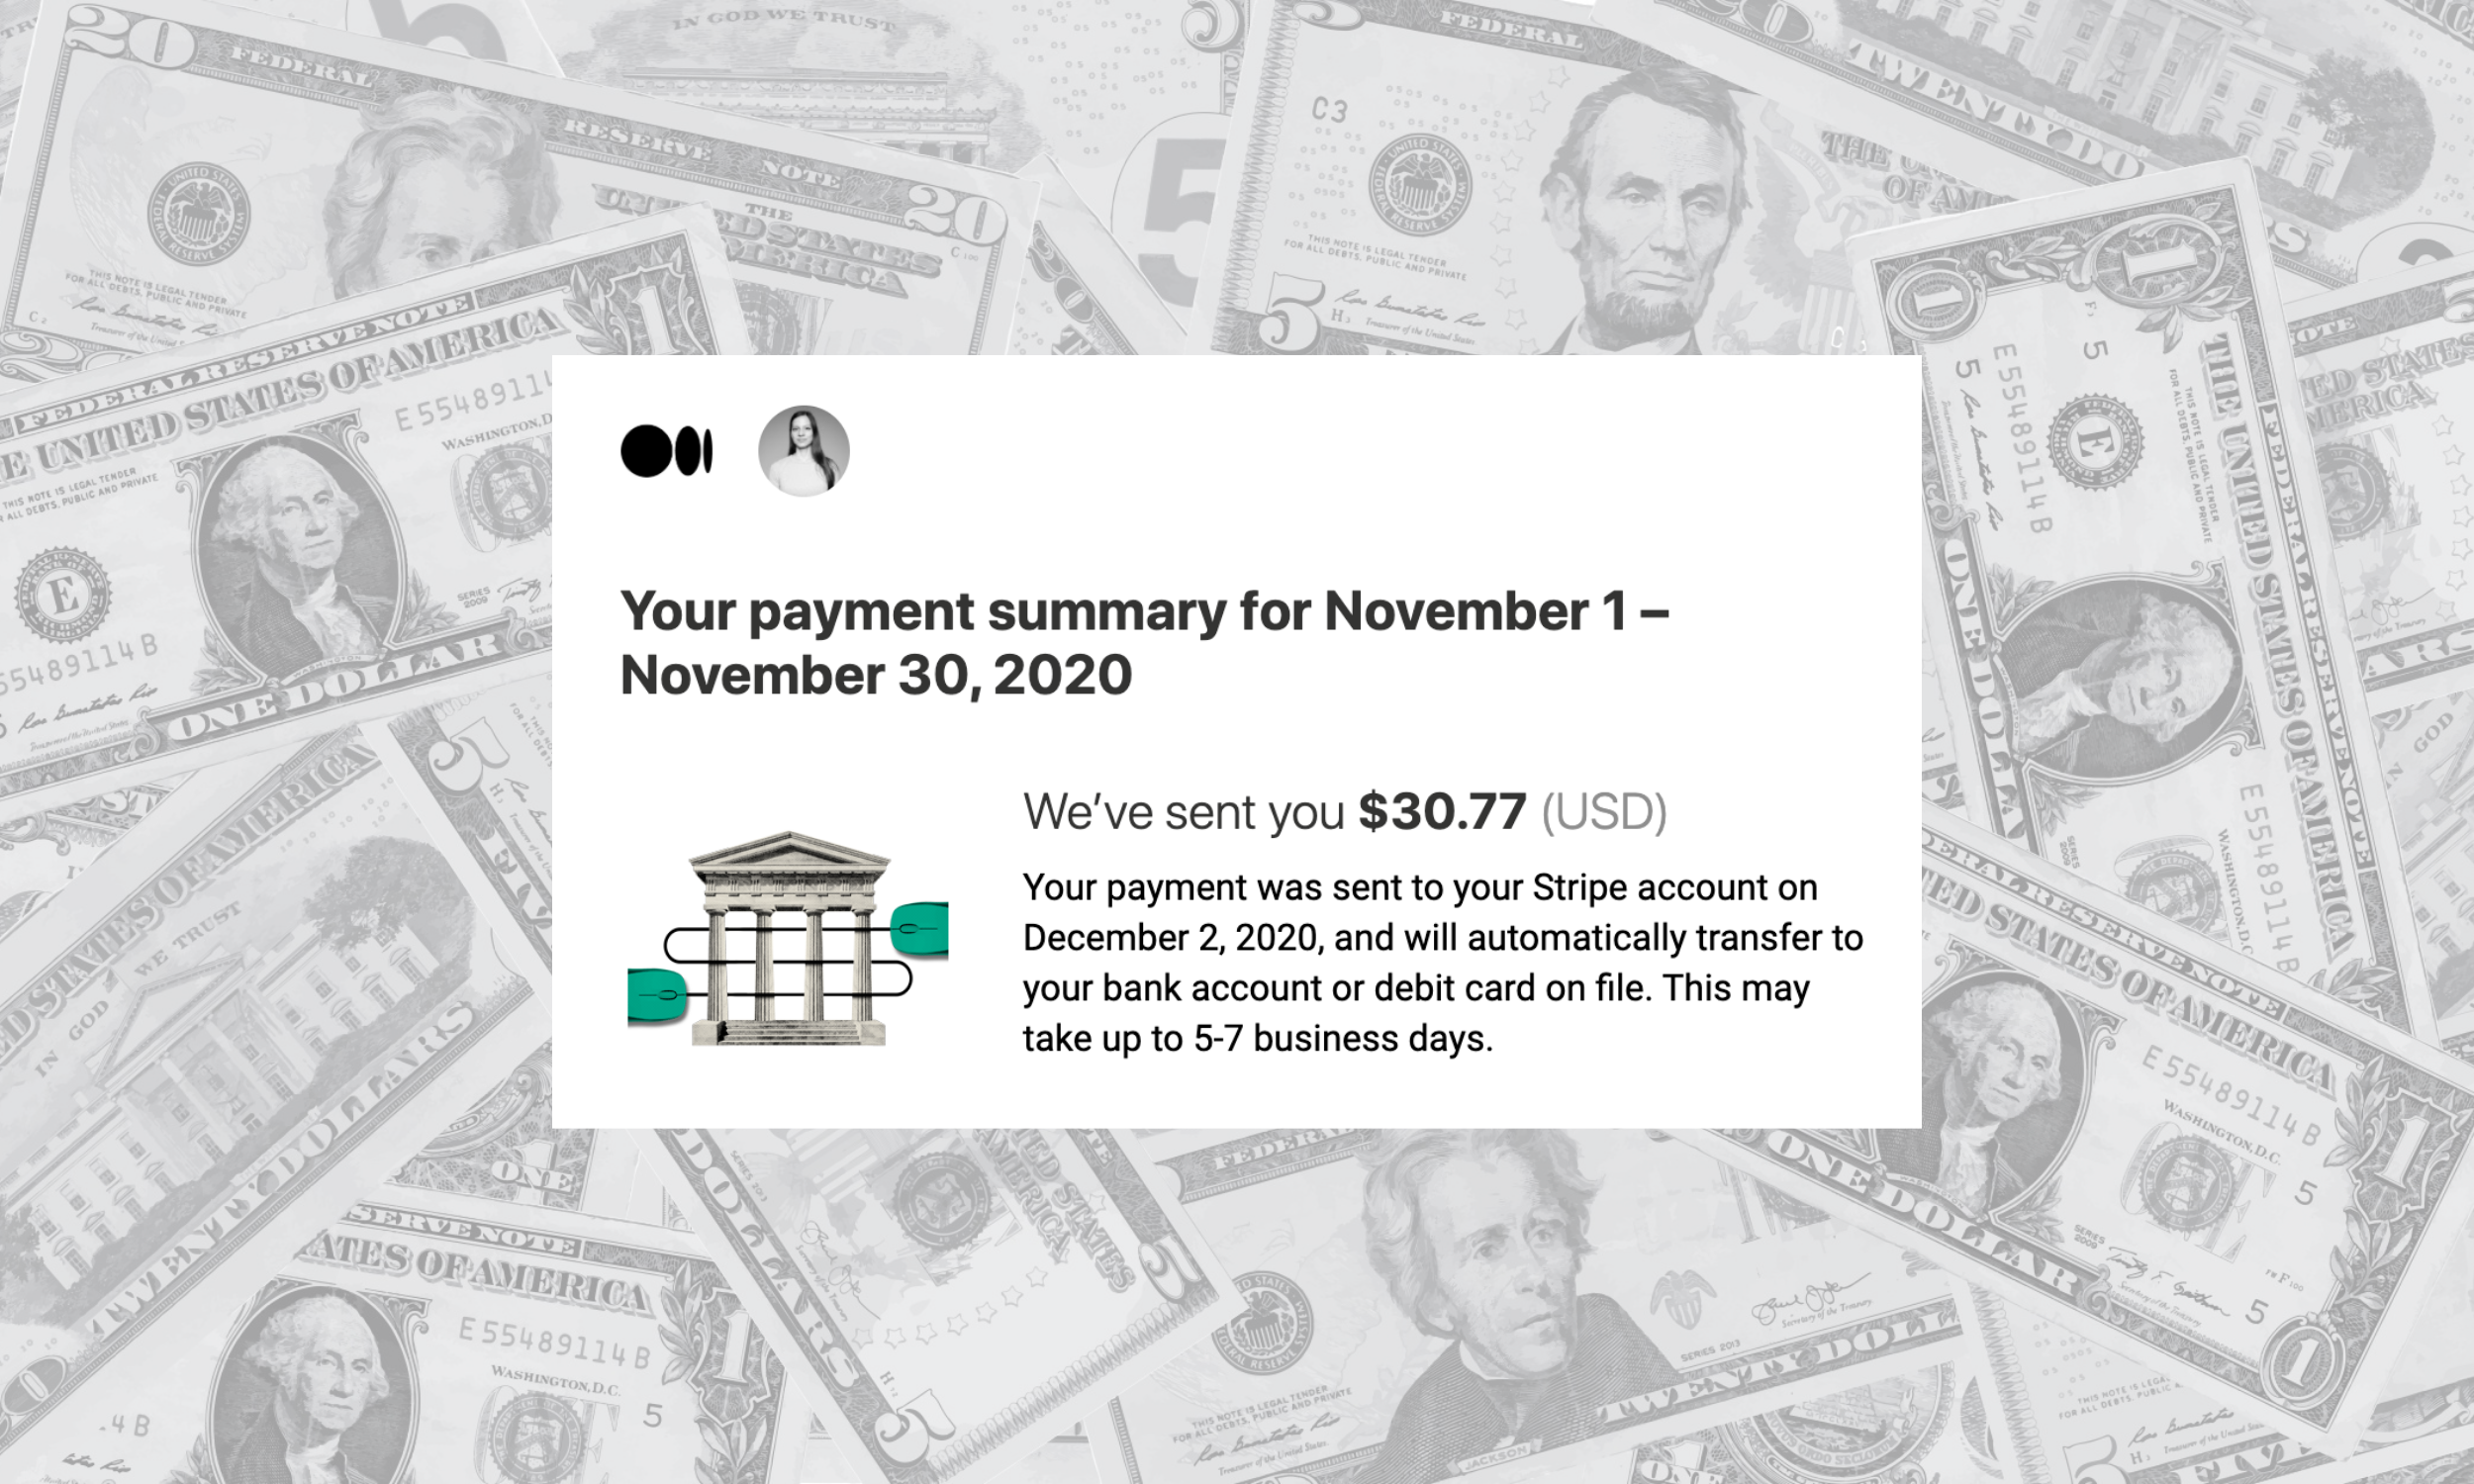 Rectangular screenshot of Medium earnings email on top of faded laid-out dollar bill background.